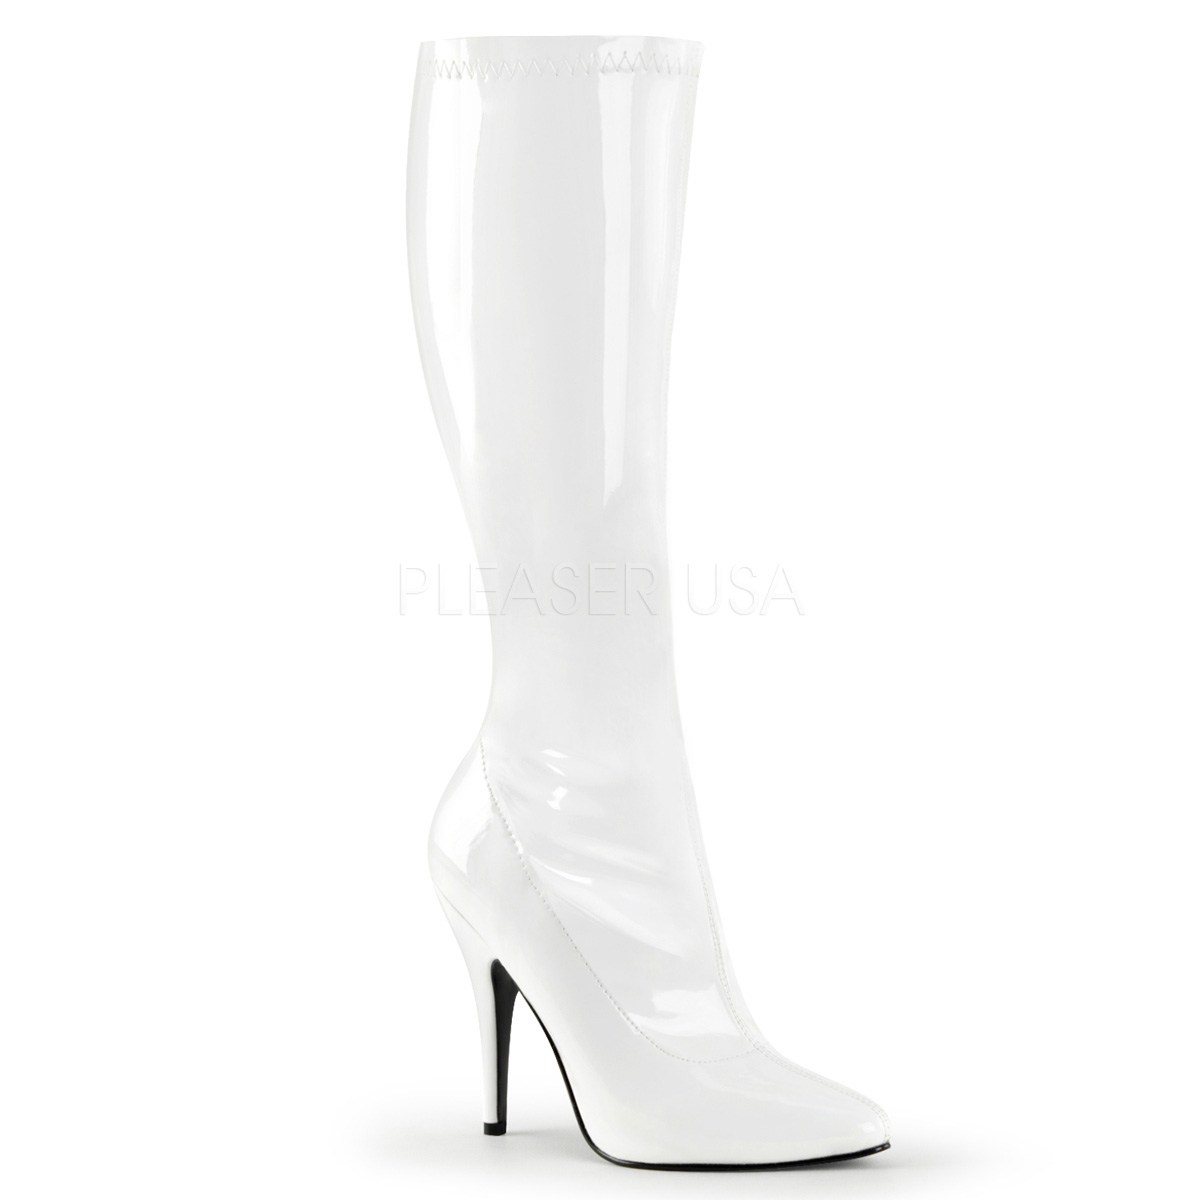 5 Inch Stiletto Heel Stretch Knee Boots